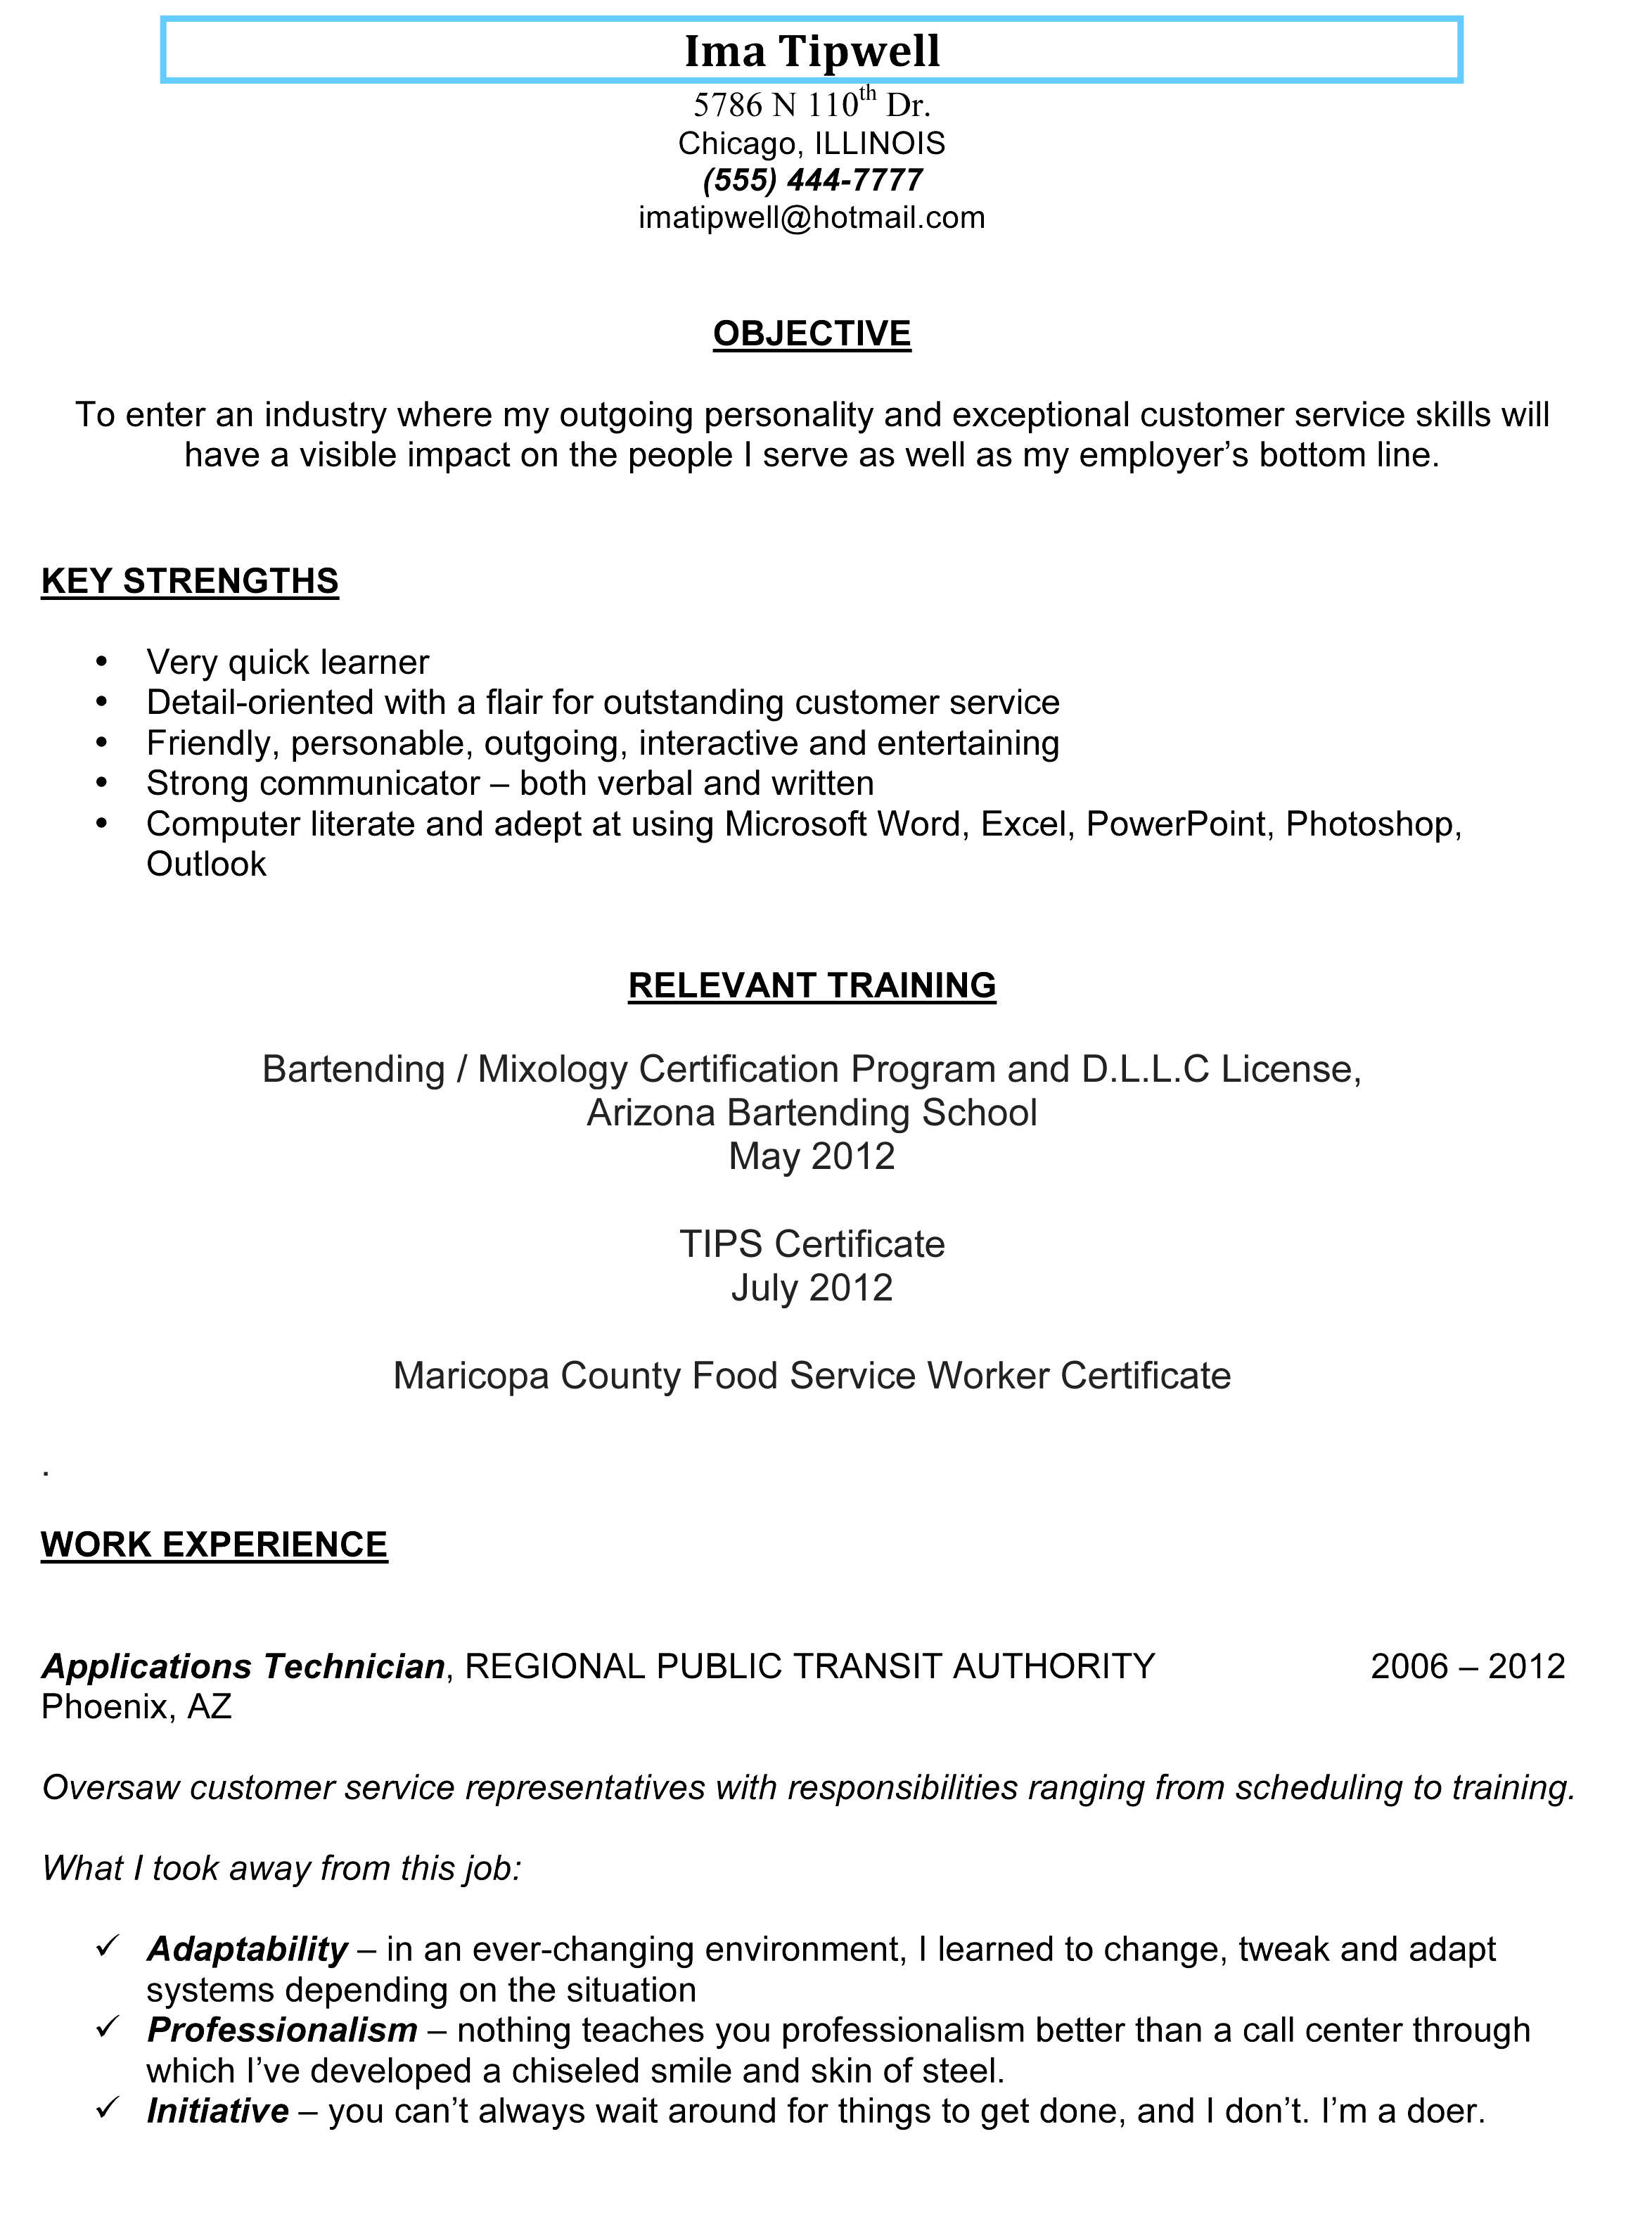 resume template for bartender no experience httpwwwresumecareerinfo